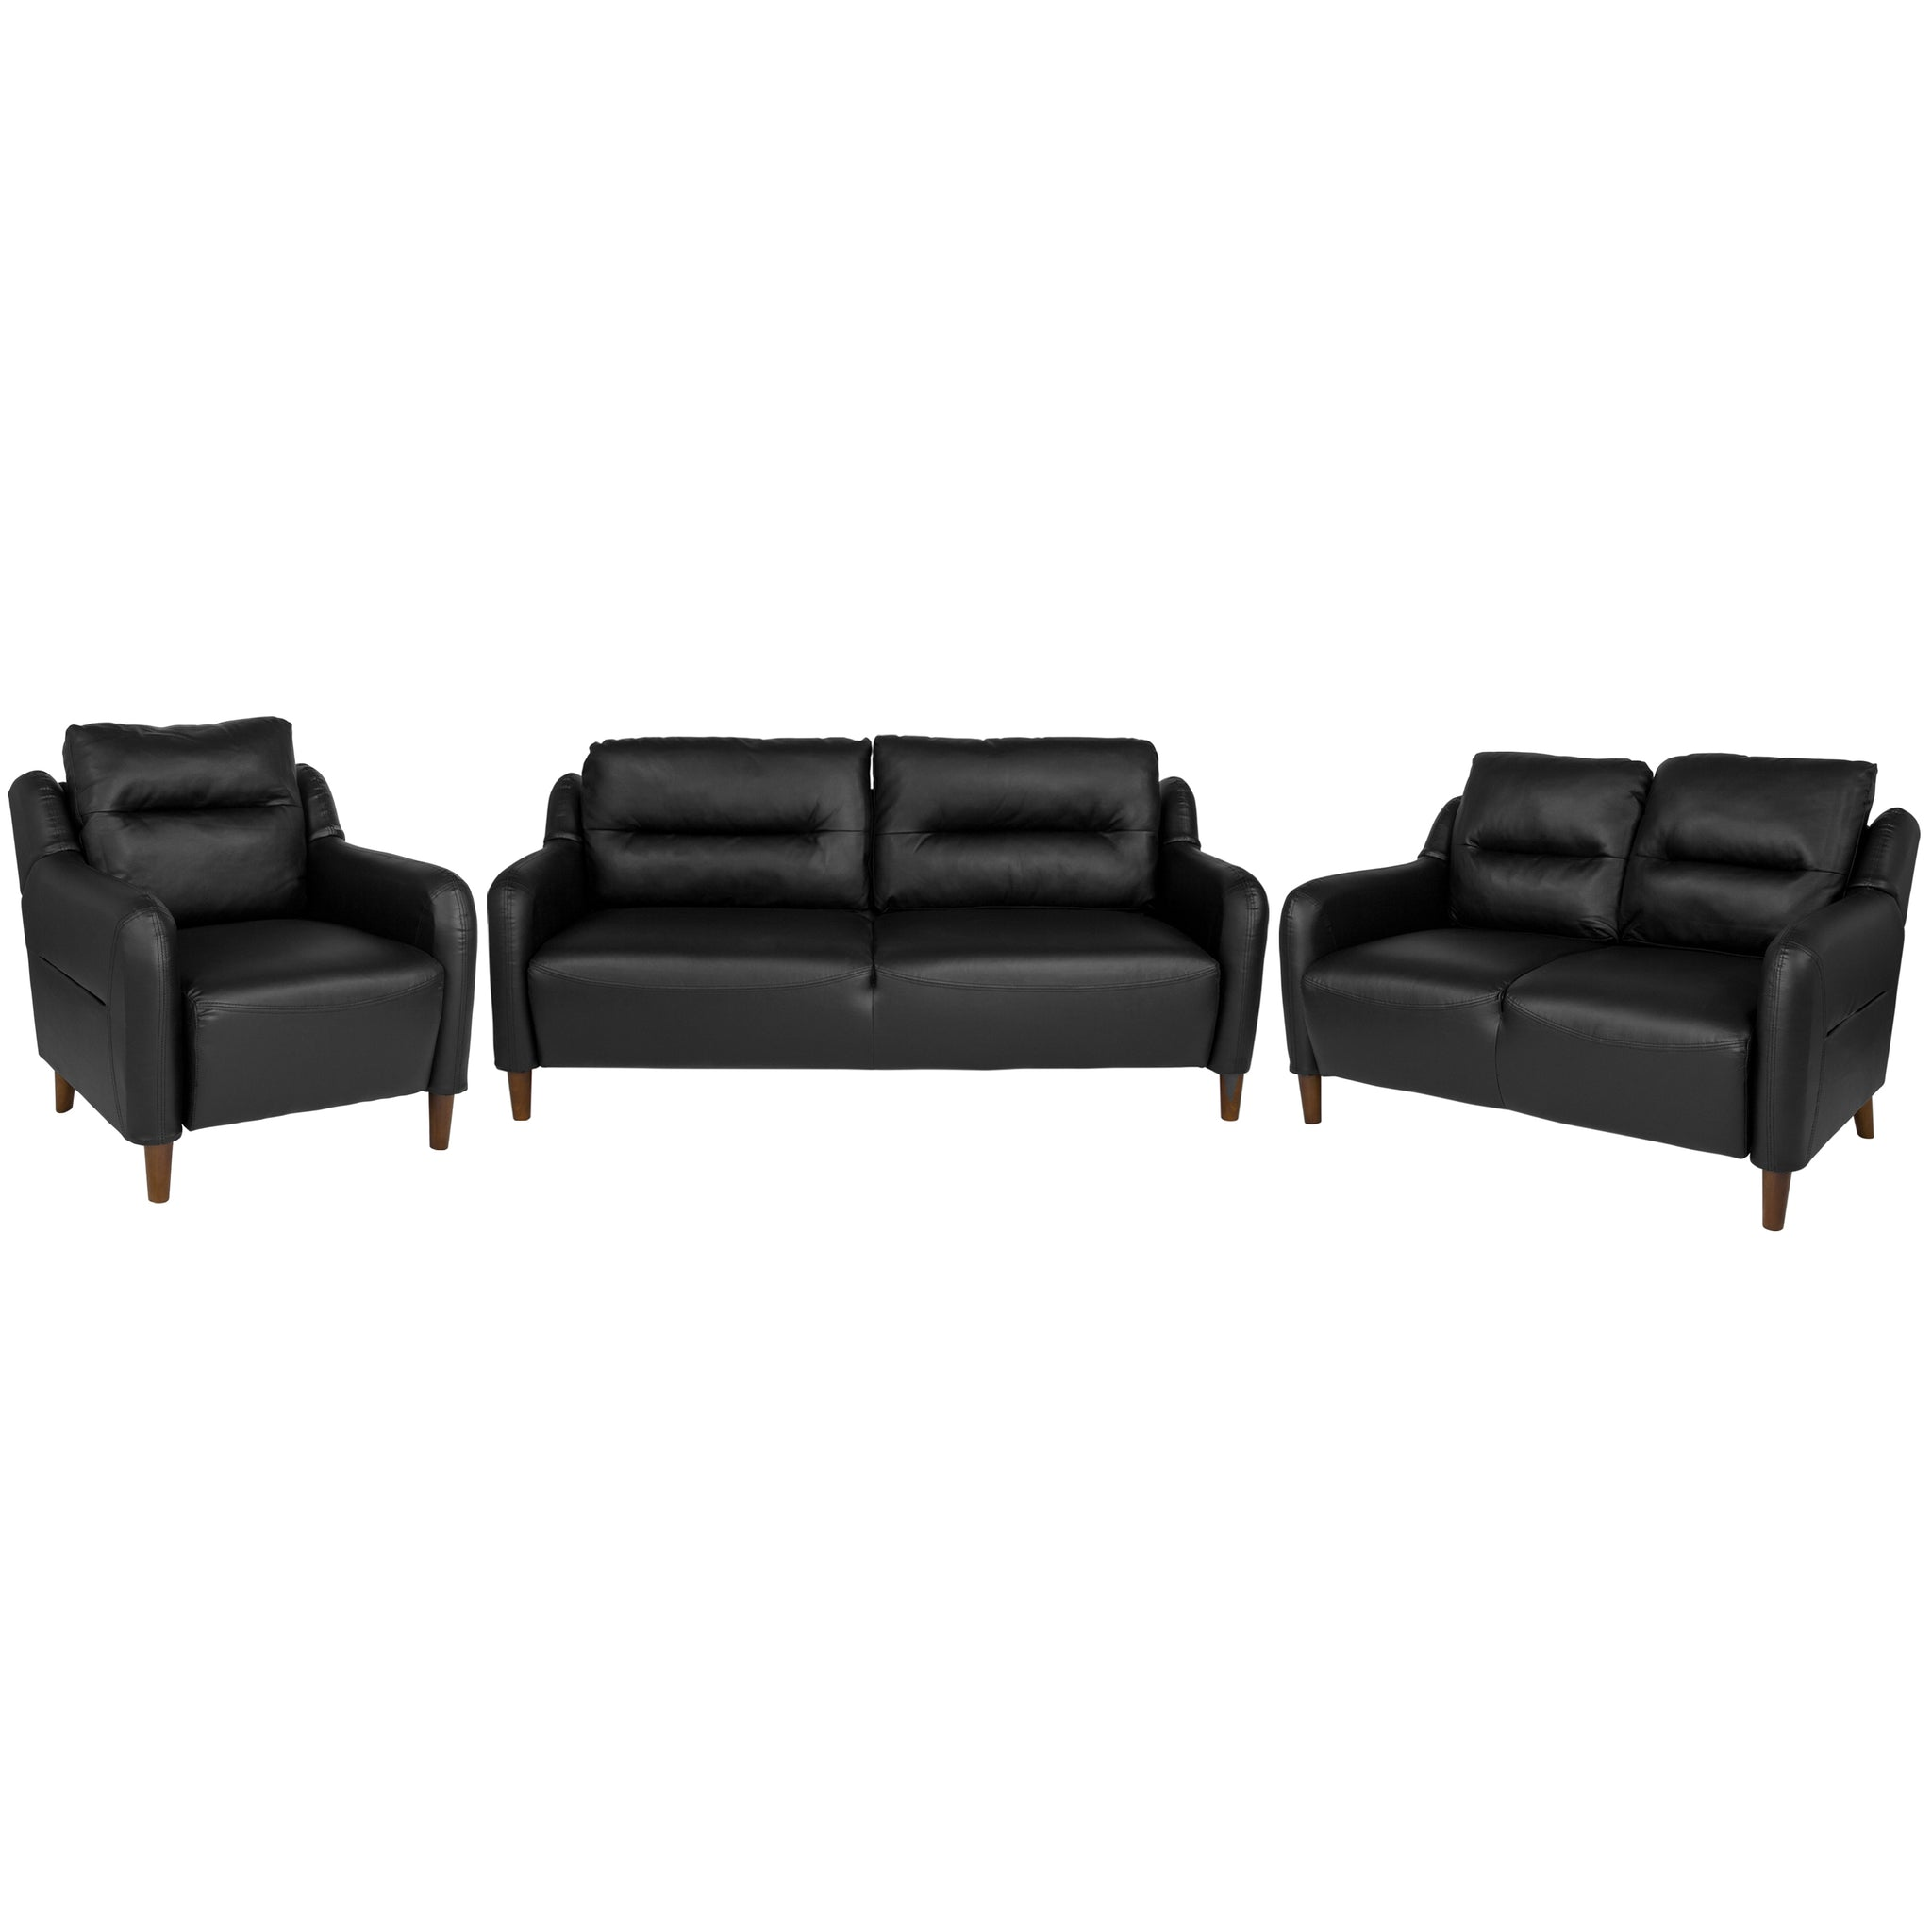 Newton Hill Upholstered Bustle Back Chair, Loveseat and Sofa Set in Black Leather